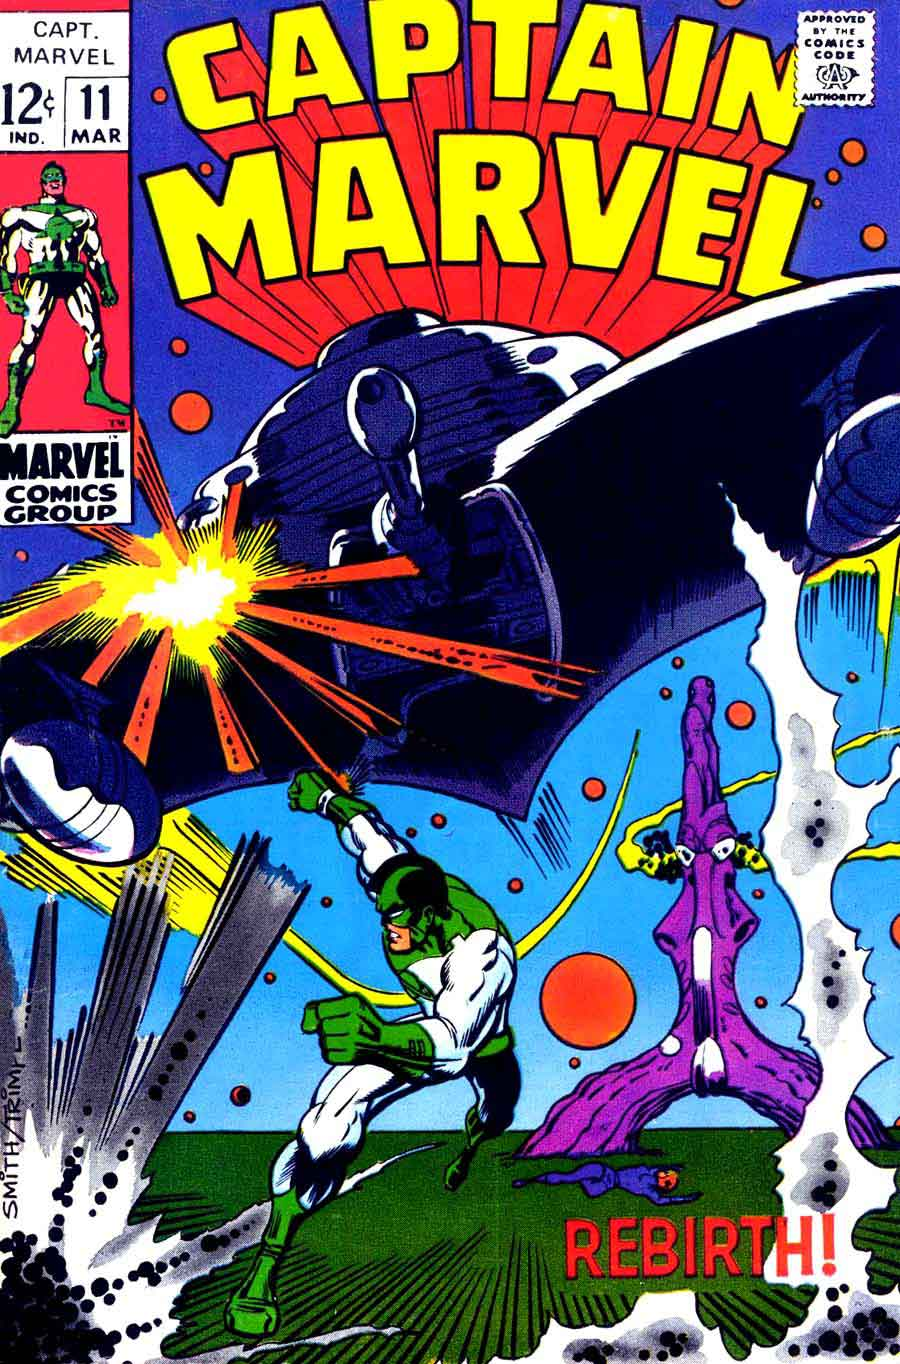 Captain Marvel v2 #11 marvel 1960s silver age comic book cover art by Barry Windsor Smith